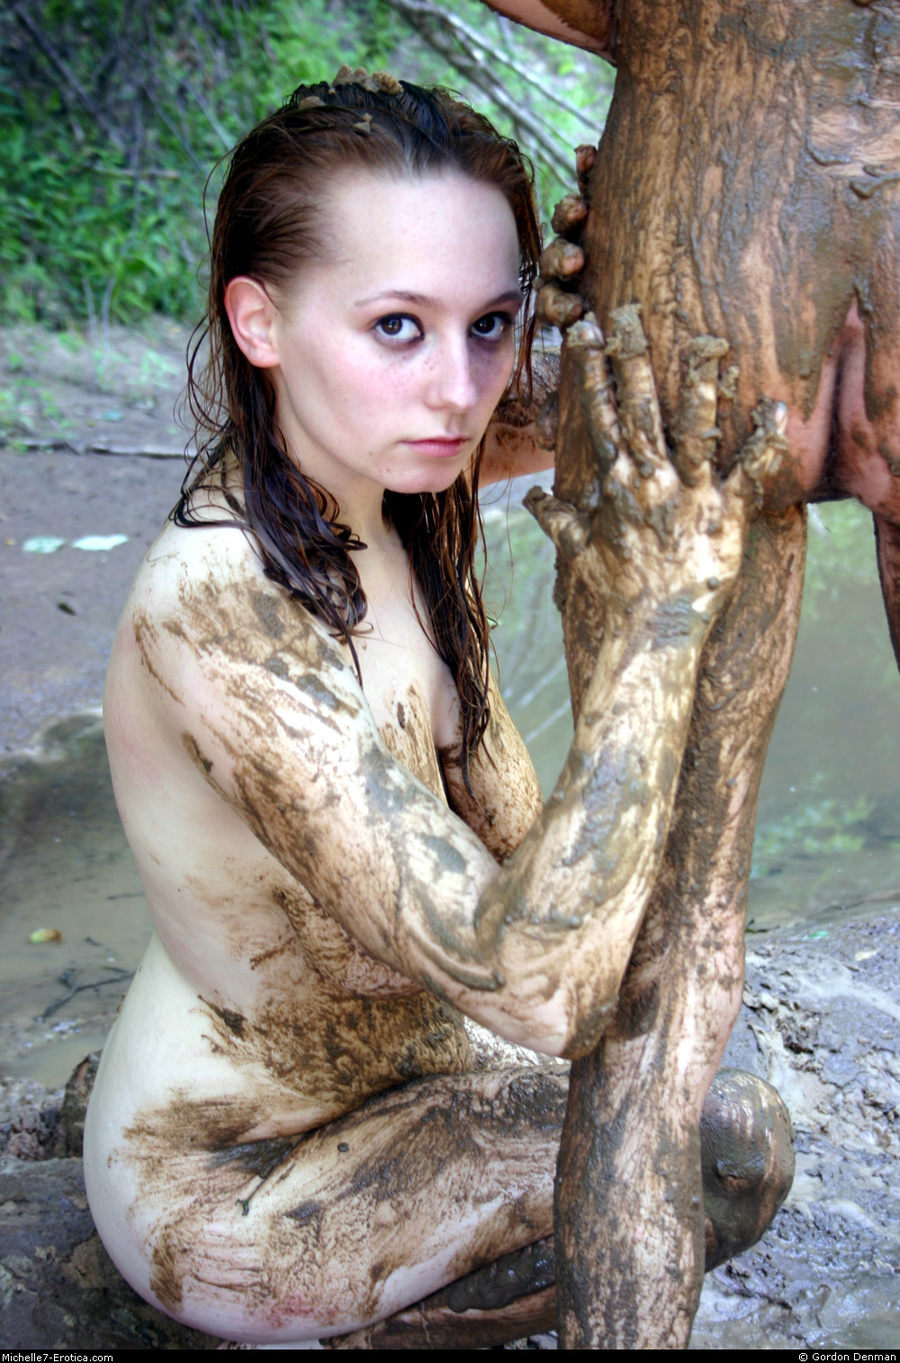 girls naked in the mud